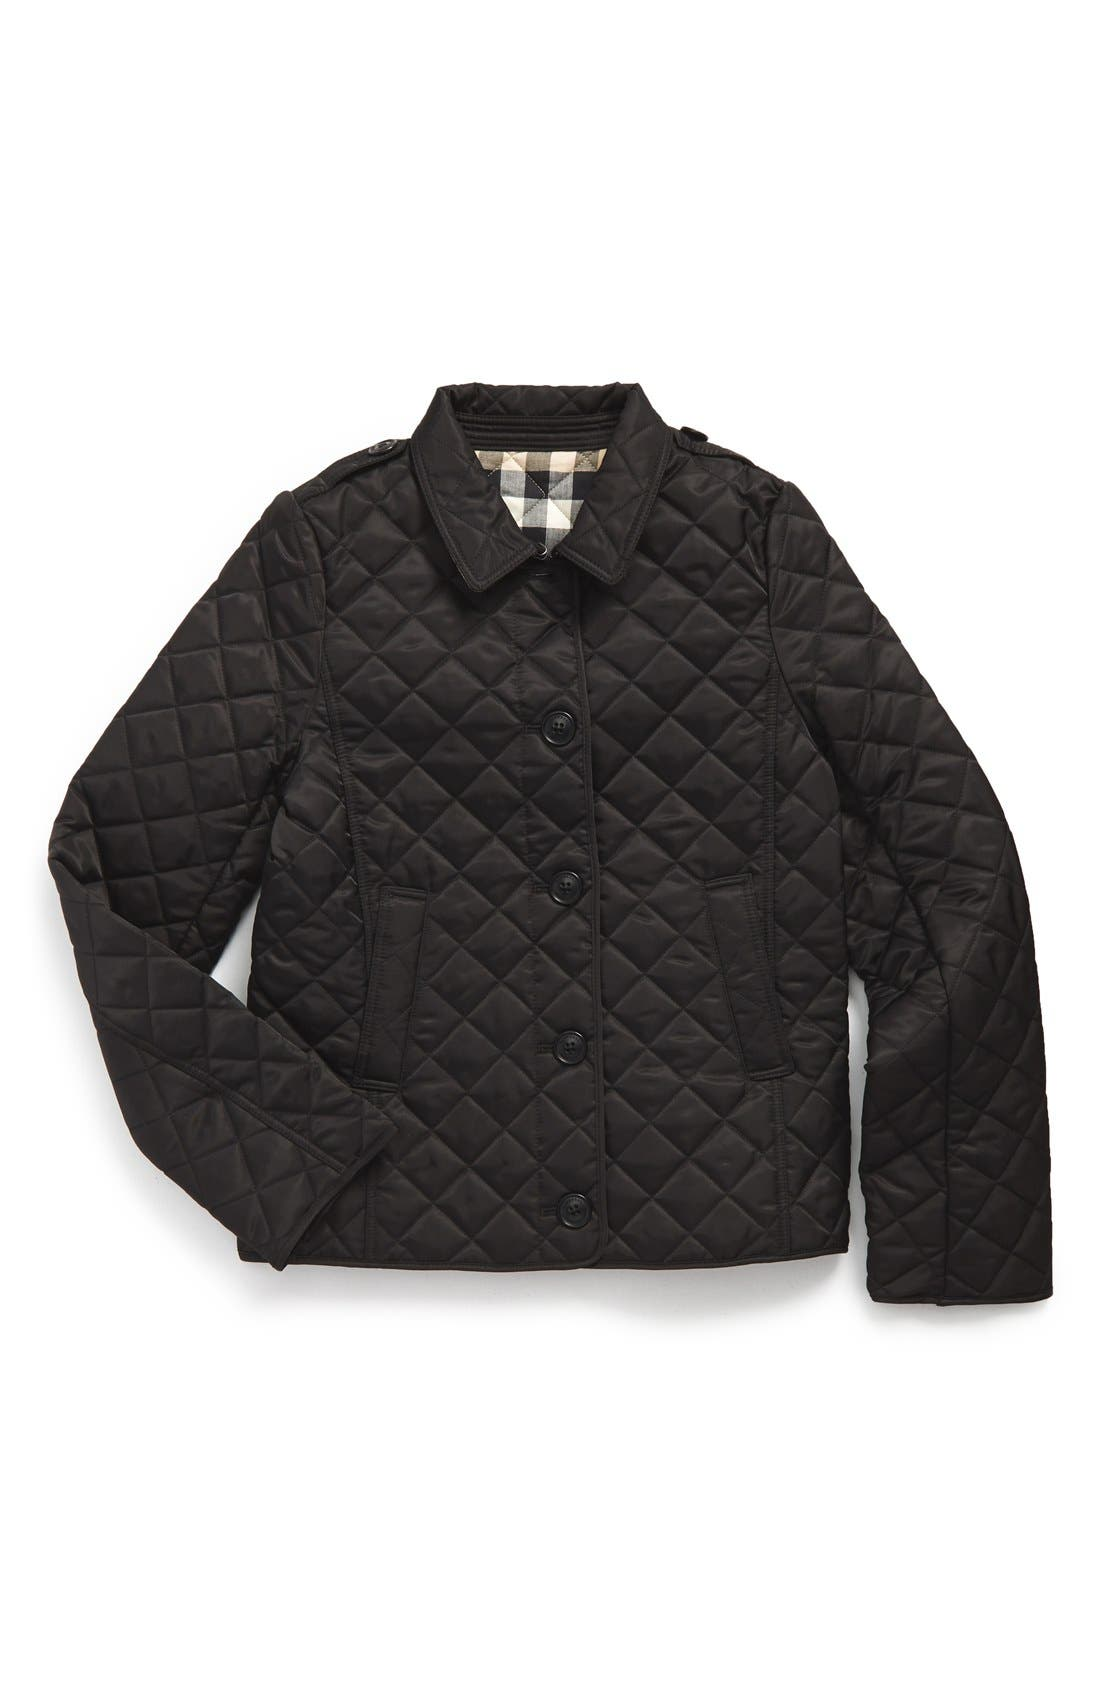 BURBERRY,                             'Mini Ashurst' Quilted Jacket,                             Main thumbnail 1, color,                             001